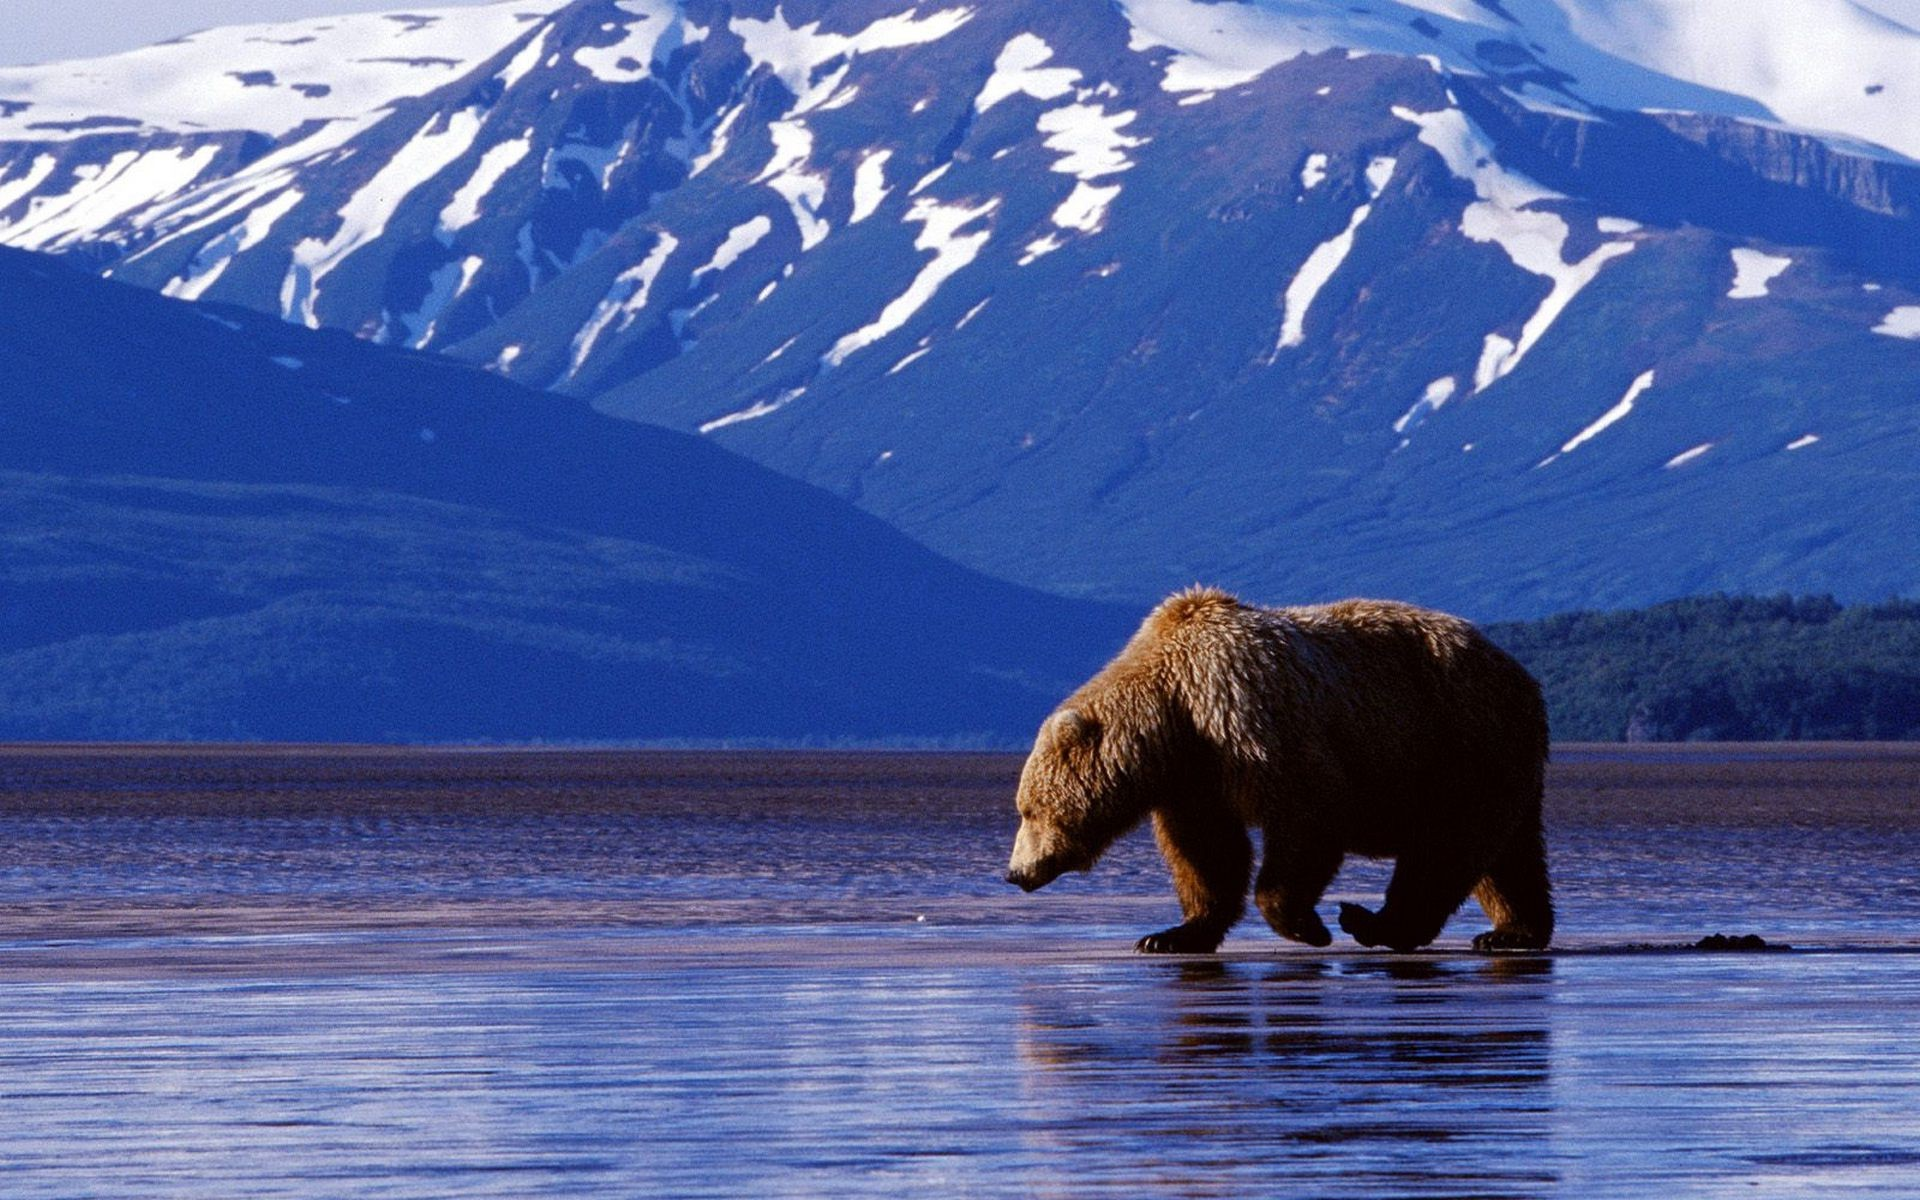 bears snow water outdoors winter lake ice travel mountain frosty nature cold landscape reflection river